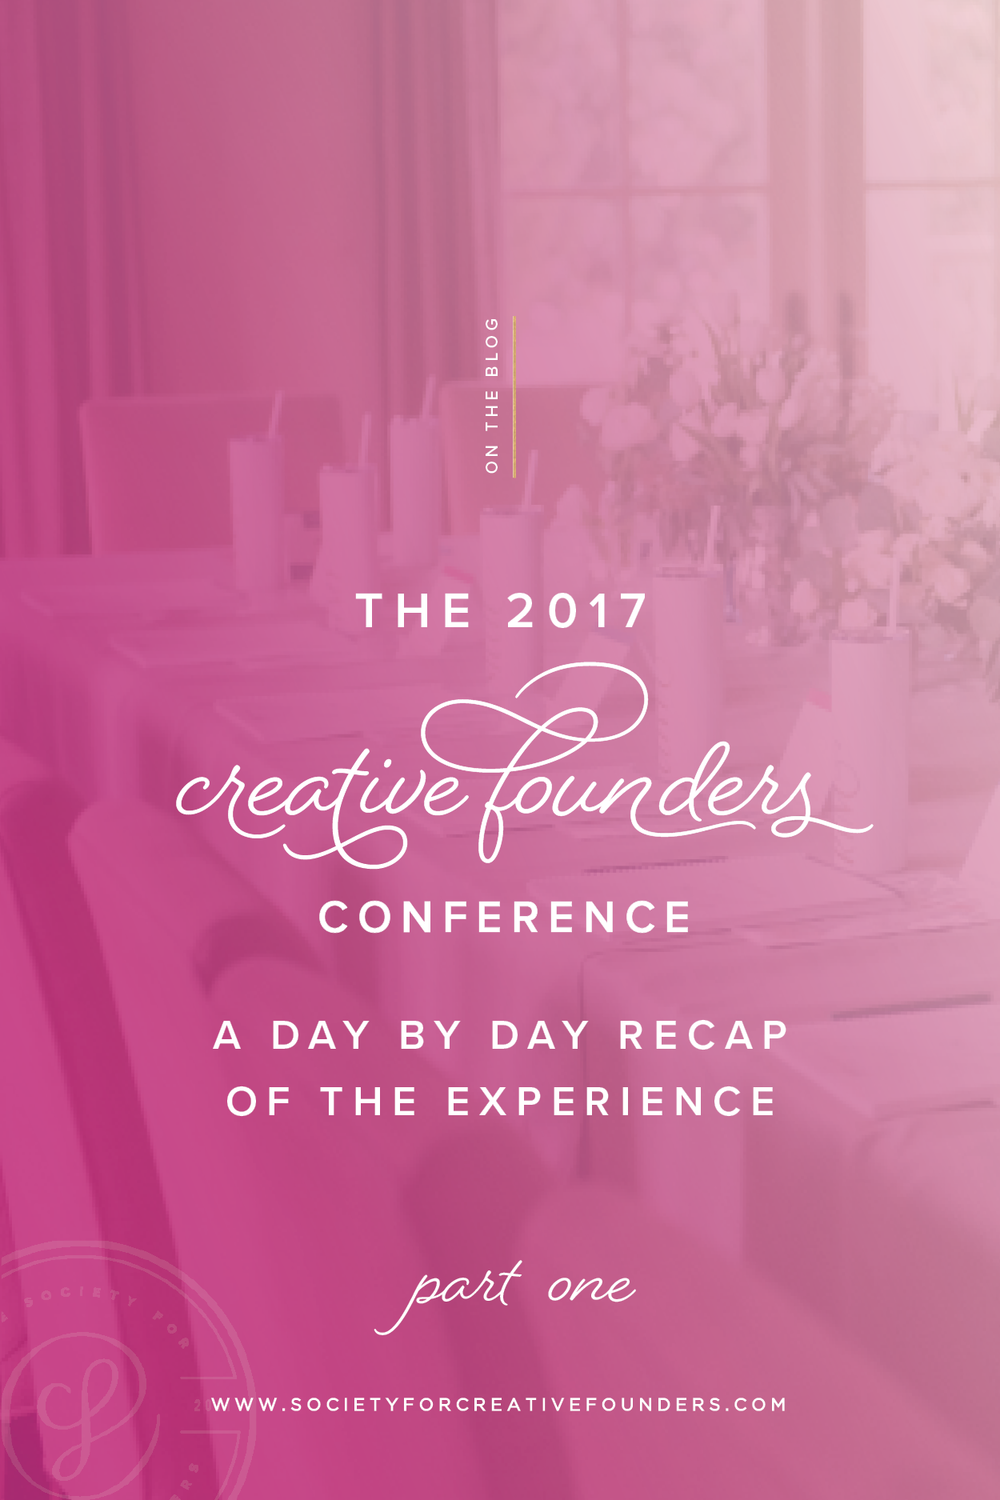 Society for Creative Founders 2017 Conference Recap - Day 1